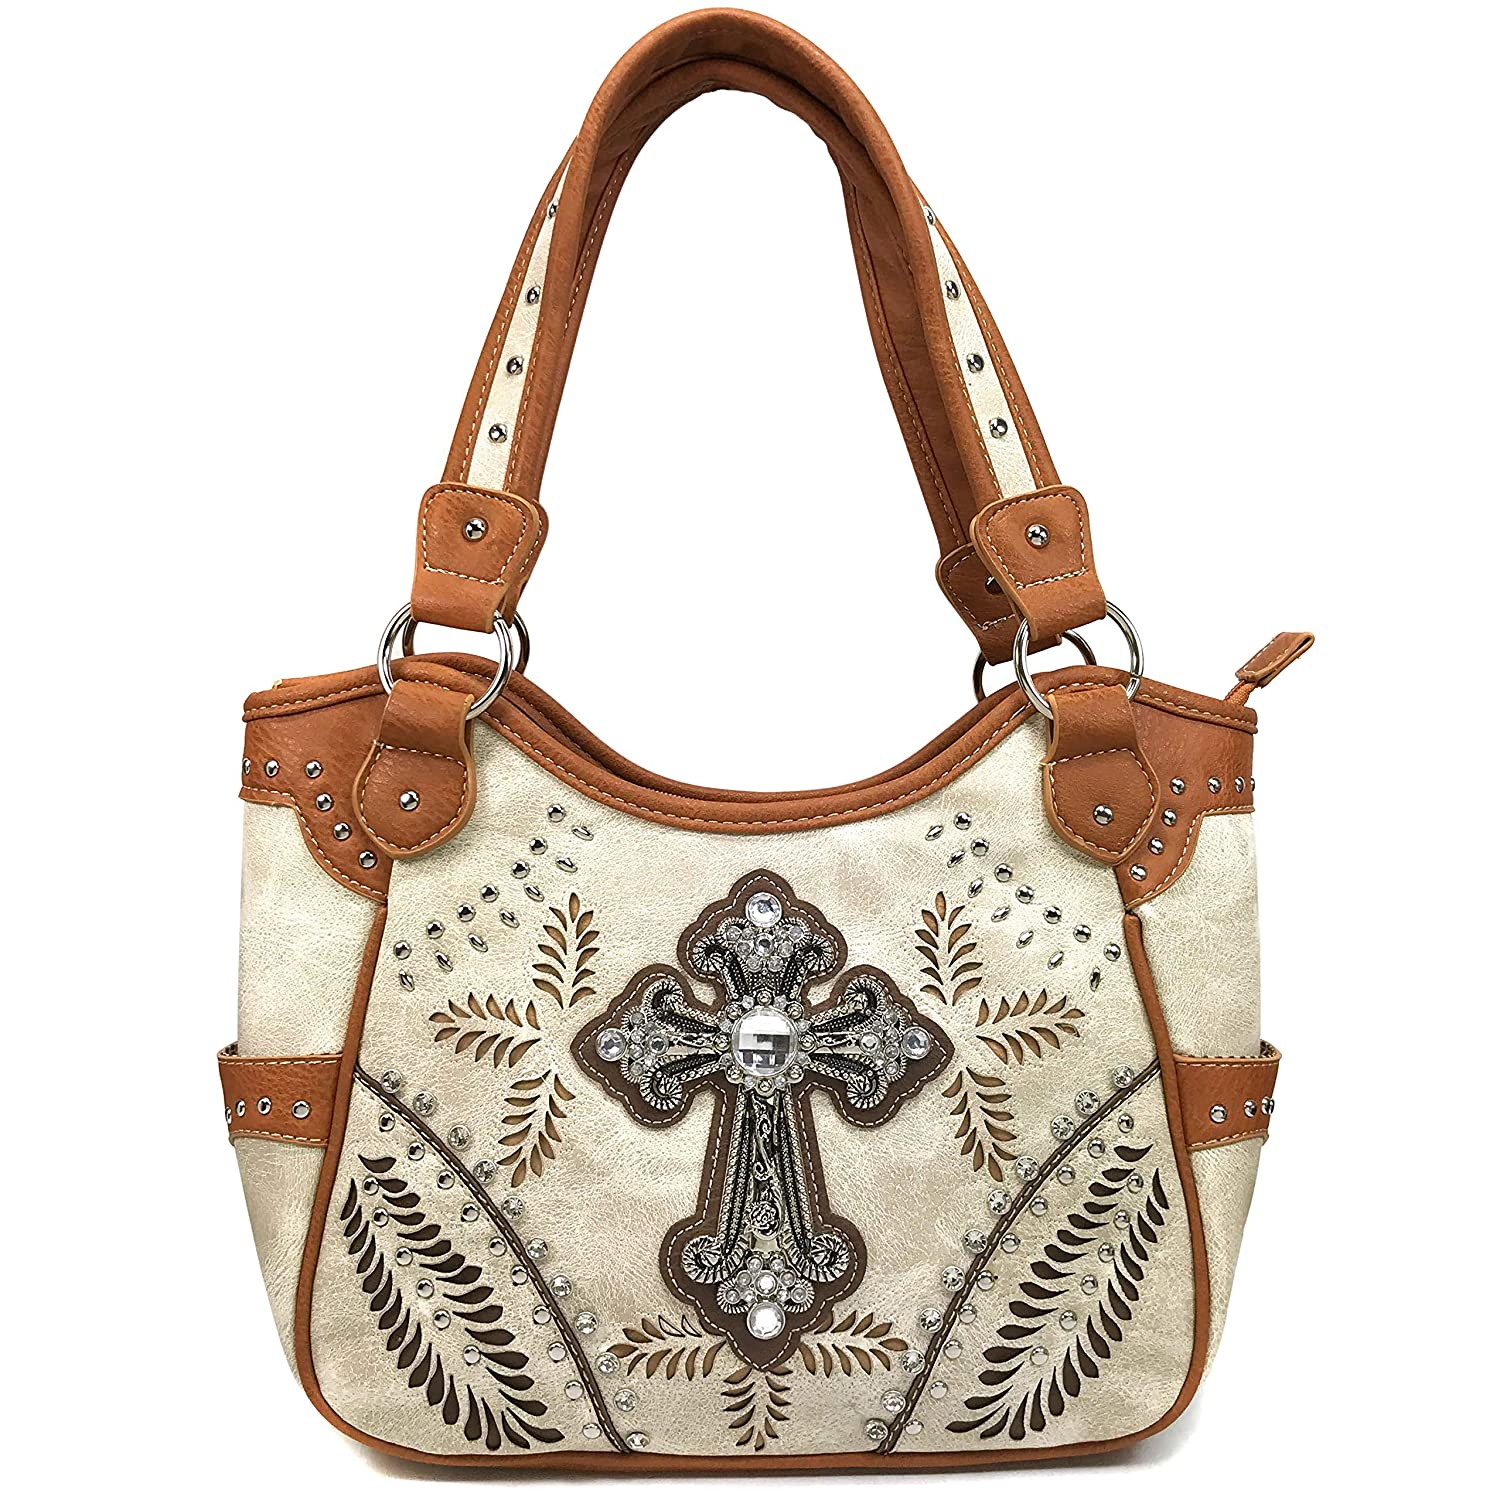 2543ba17c64e Amazon.com  Justin West Tooled Laser Cut Leather Floral Embroidery  Rhinestone Buckle Studded Shoulder Concealed Carry Tote Style Handbag Purse  (Beige ...